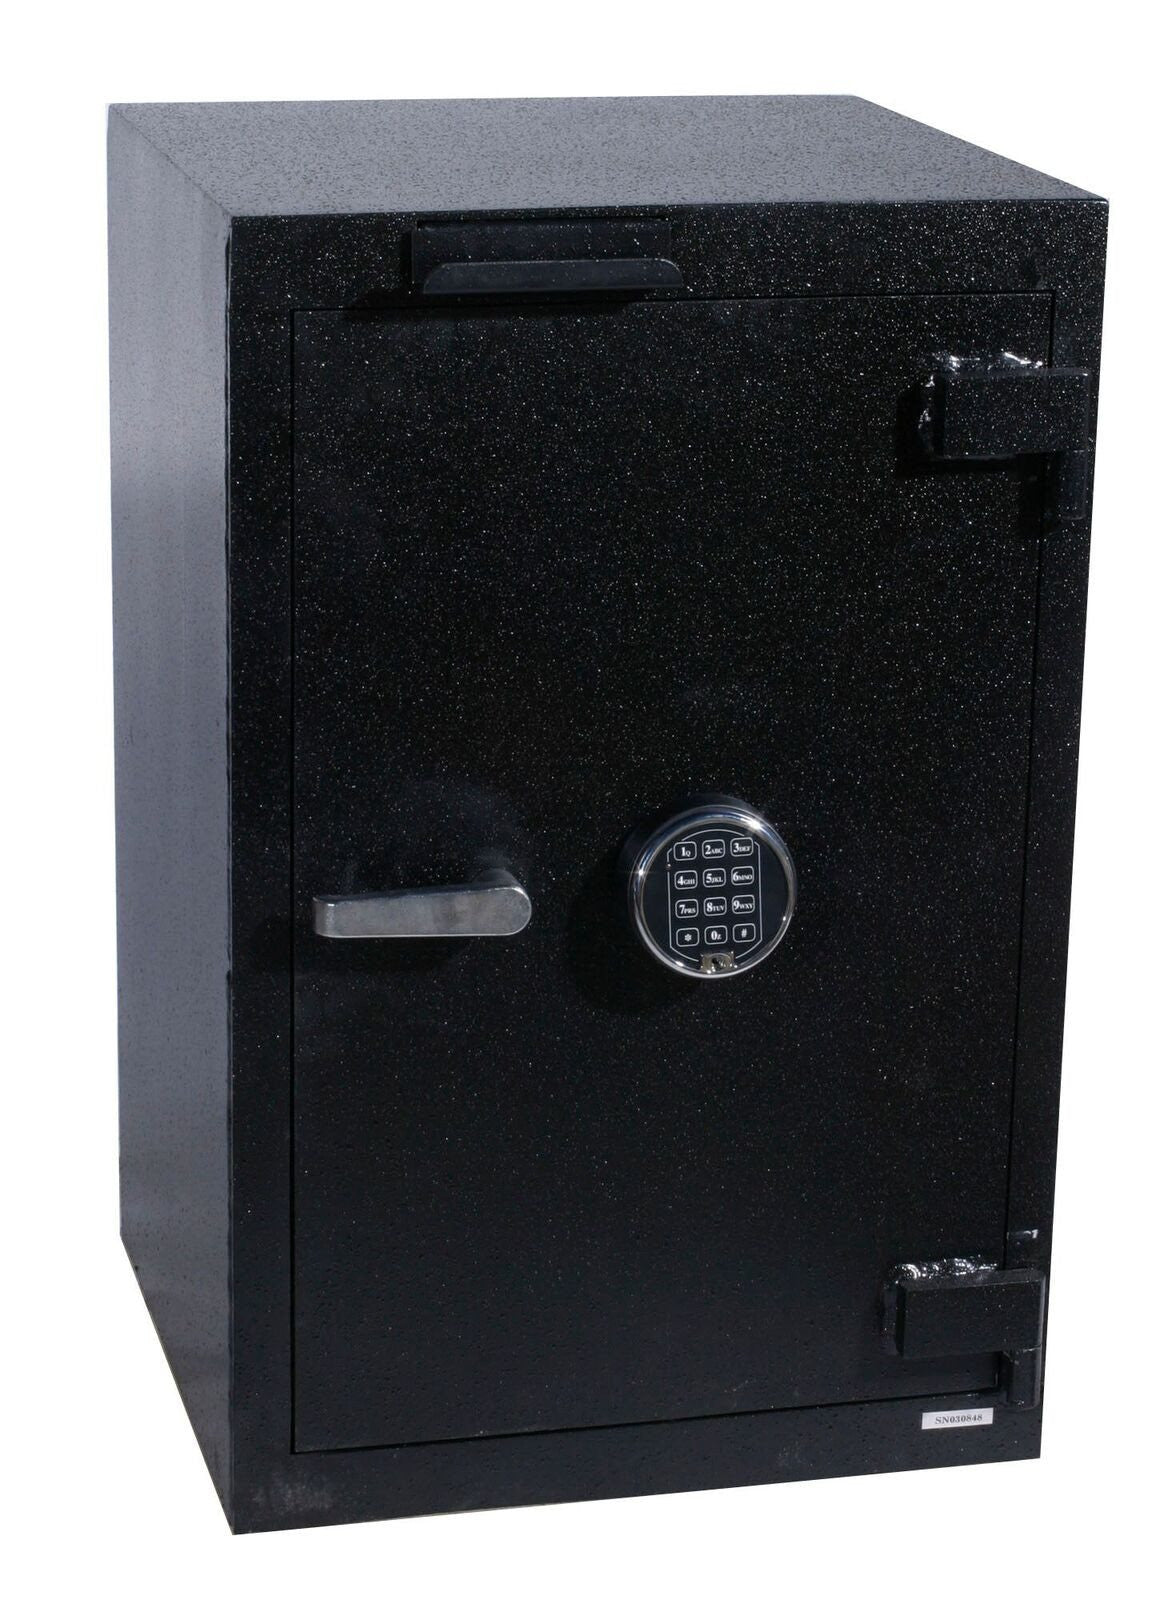 FireKing B3018WD-FK1SG40 Drop Drawer Safe